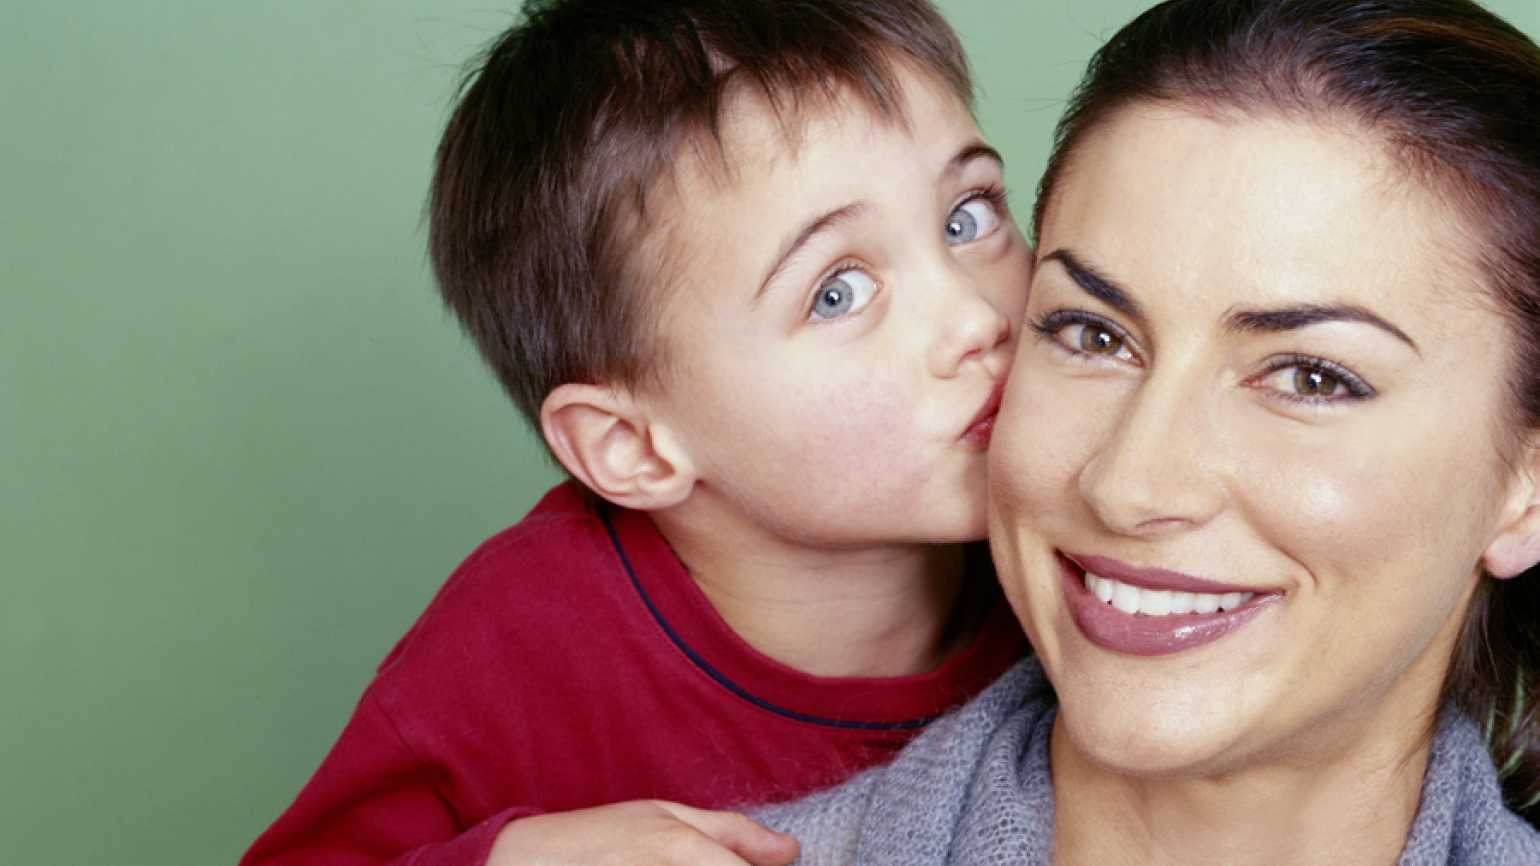 Guideposts: A young boy plants  a smooch on the cheek of his smiling mother